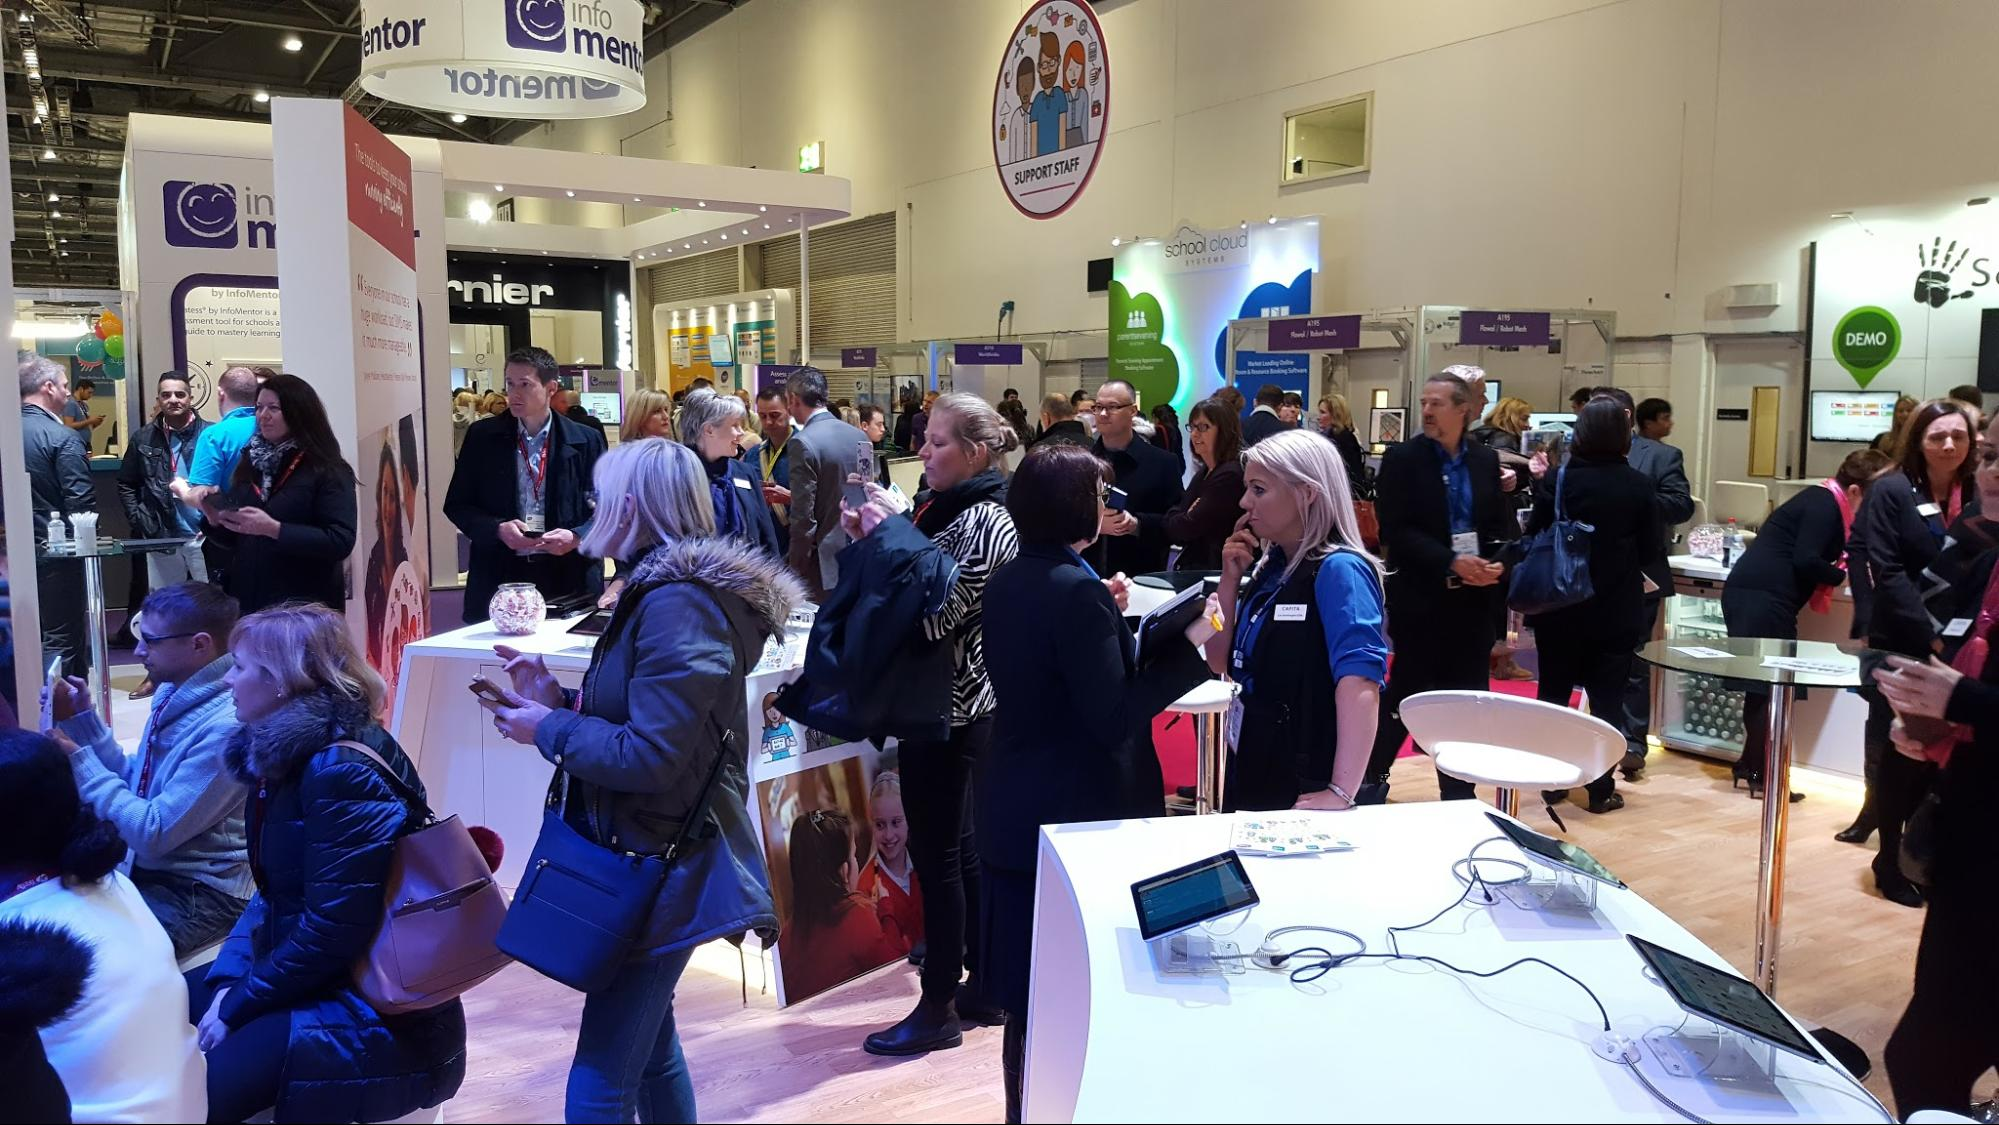 An Overview of Capita SIMS at BETT 2017 - SIMS Assessment Manager Blog